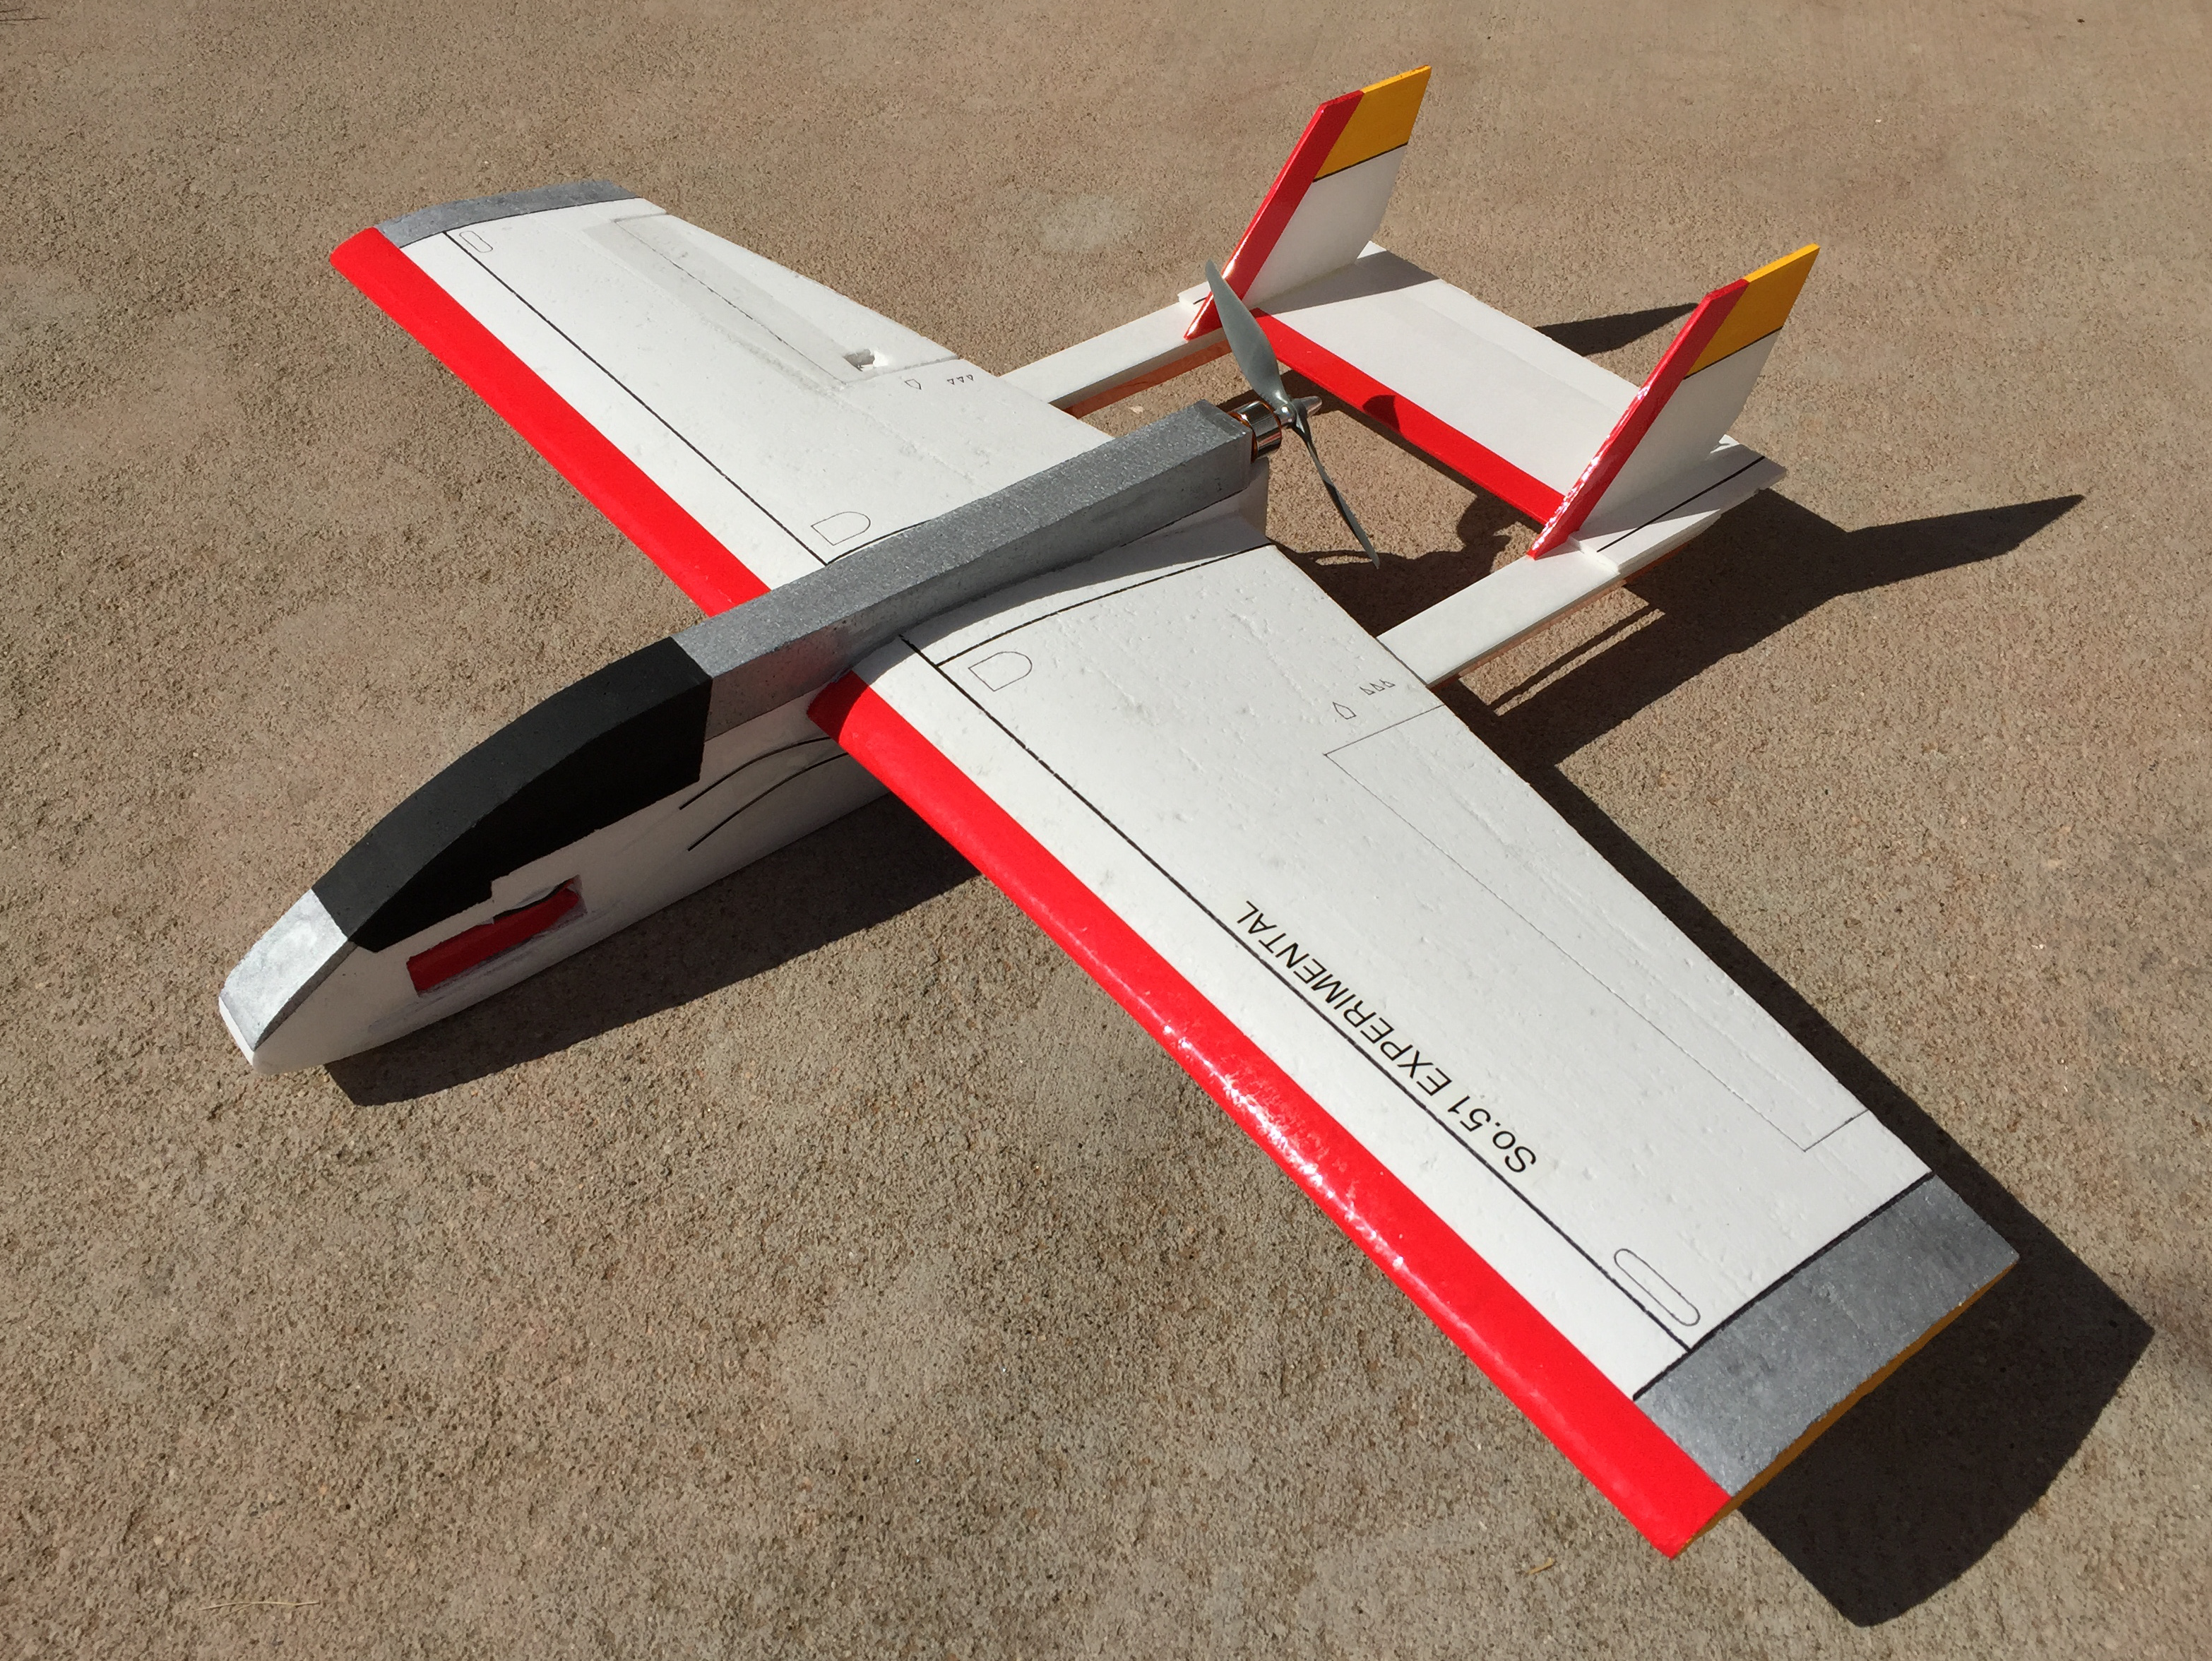 Foamflyer 39 S Rc Airplanes